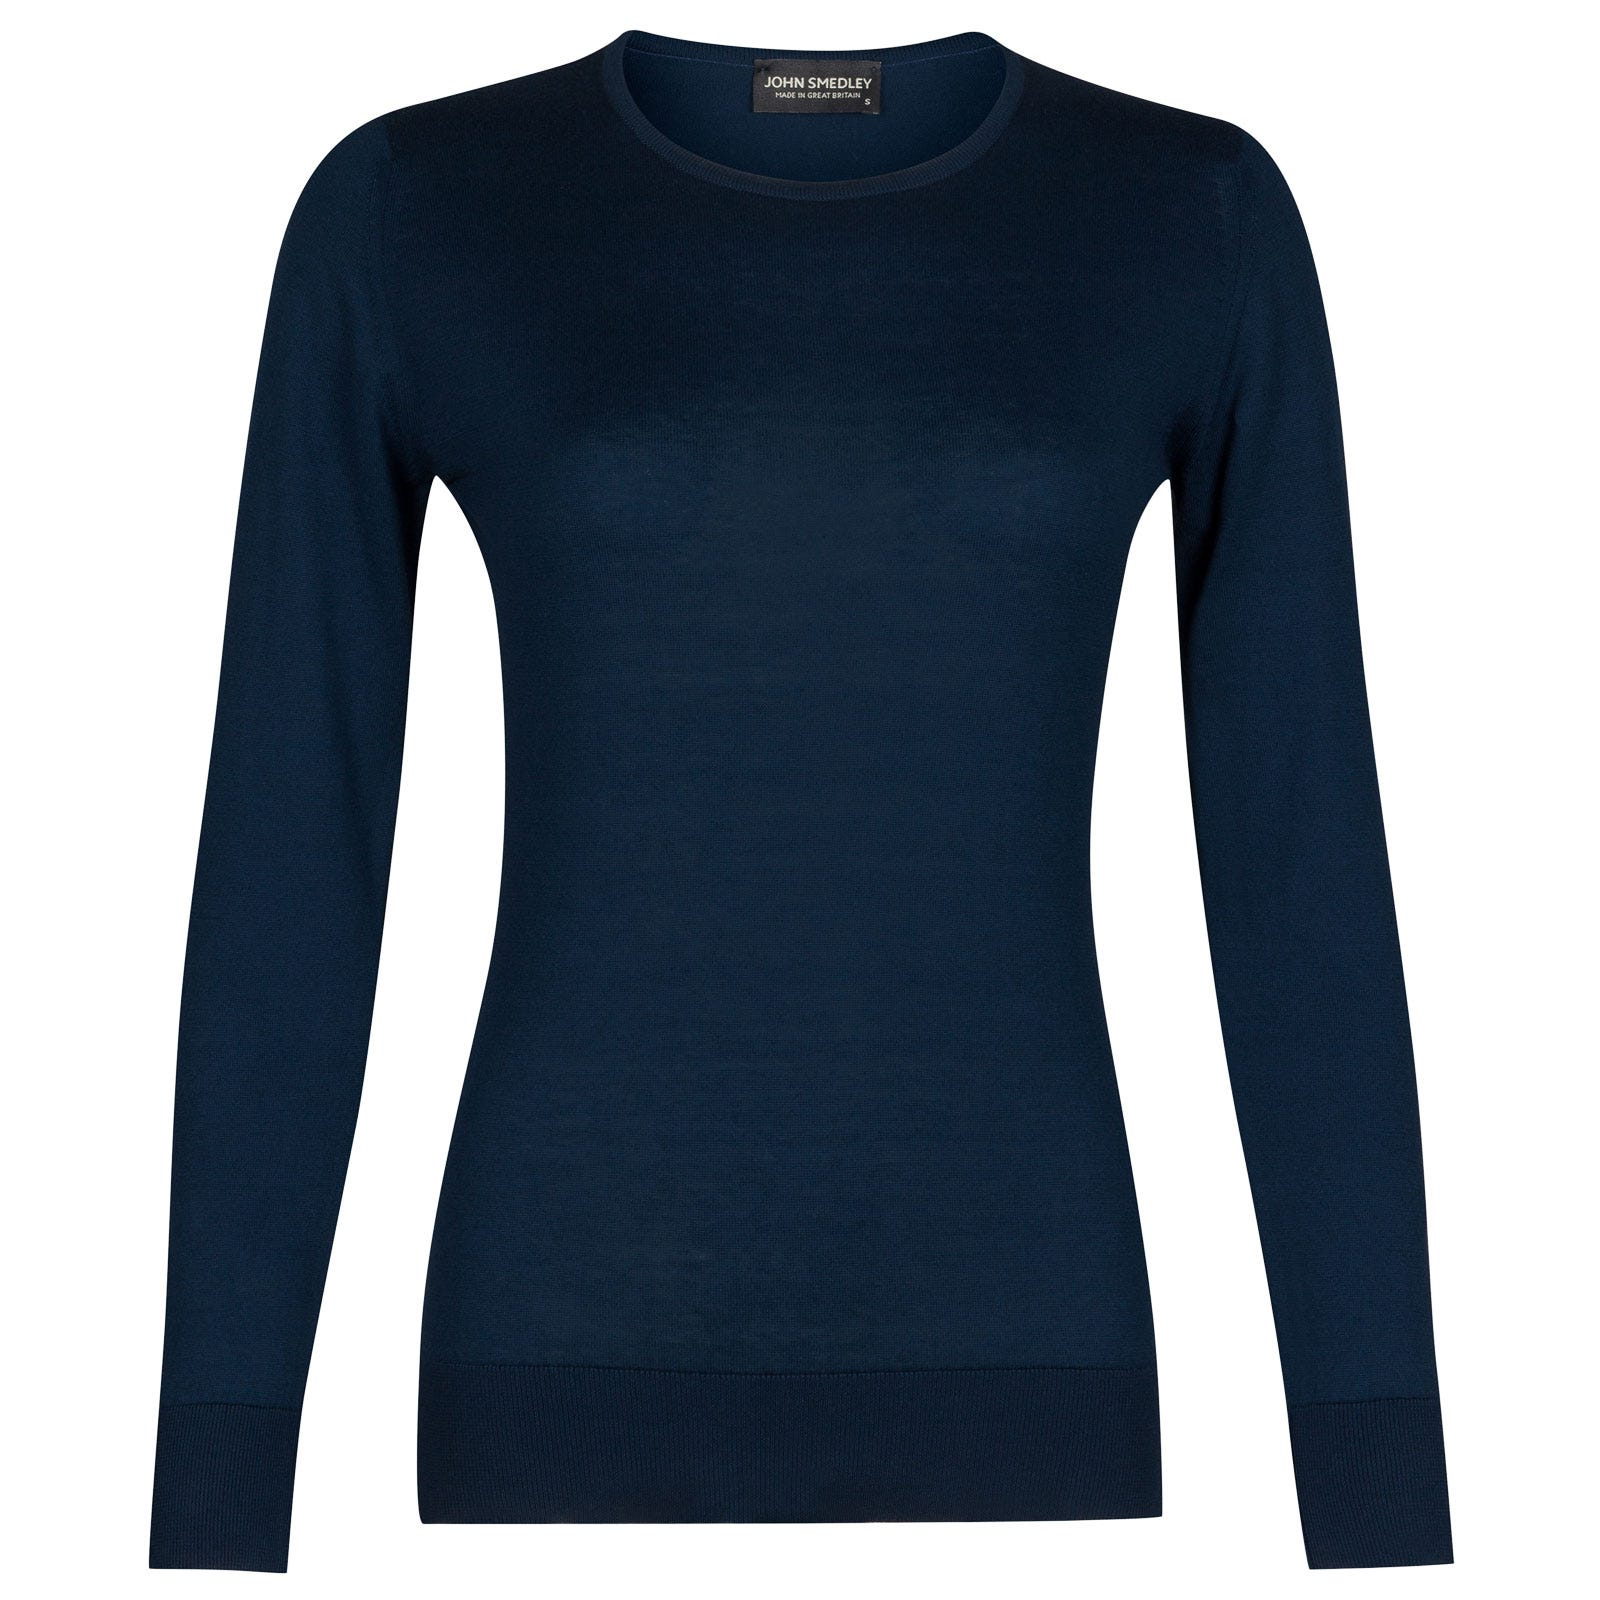 John Smedley paddington Sea Island Cotton Sweater in Indigo-L